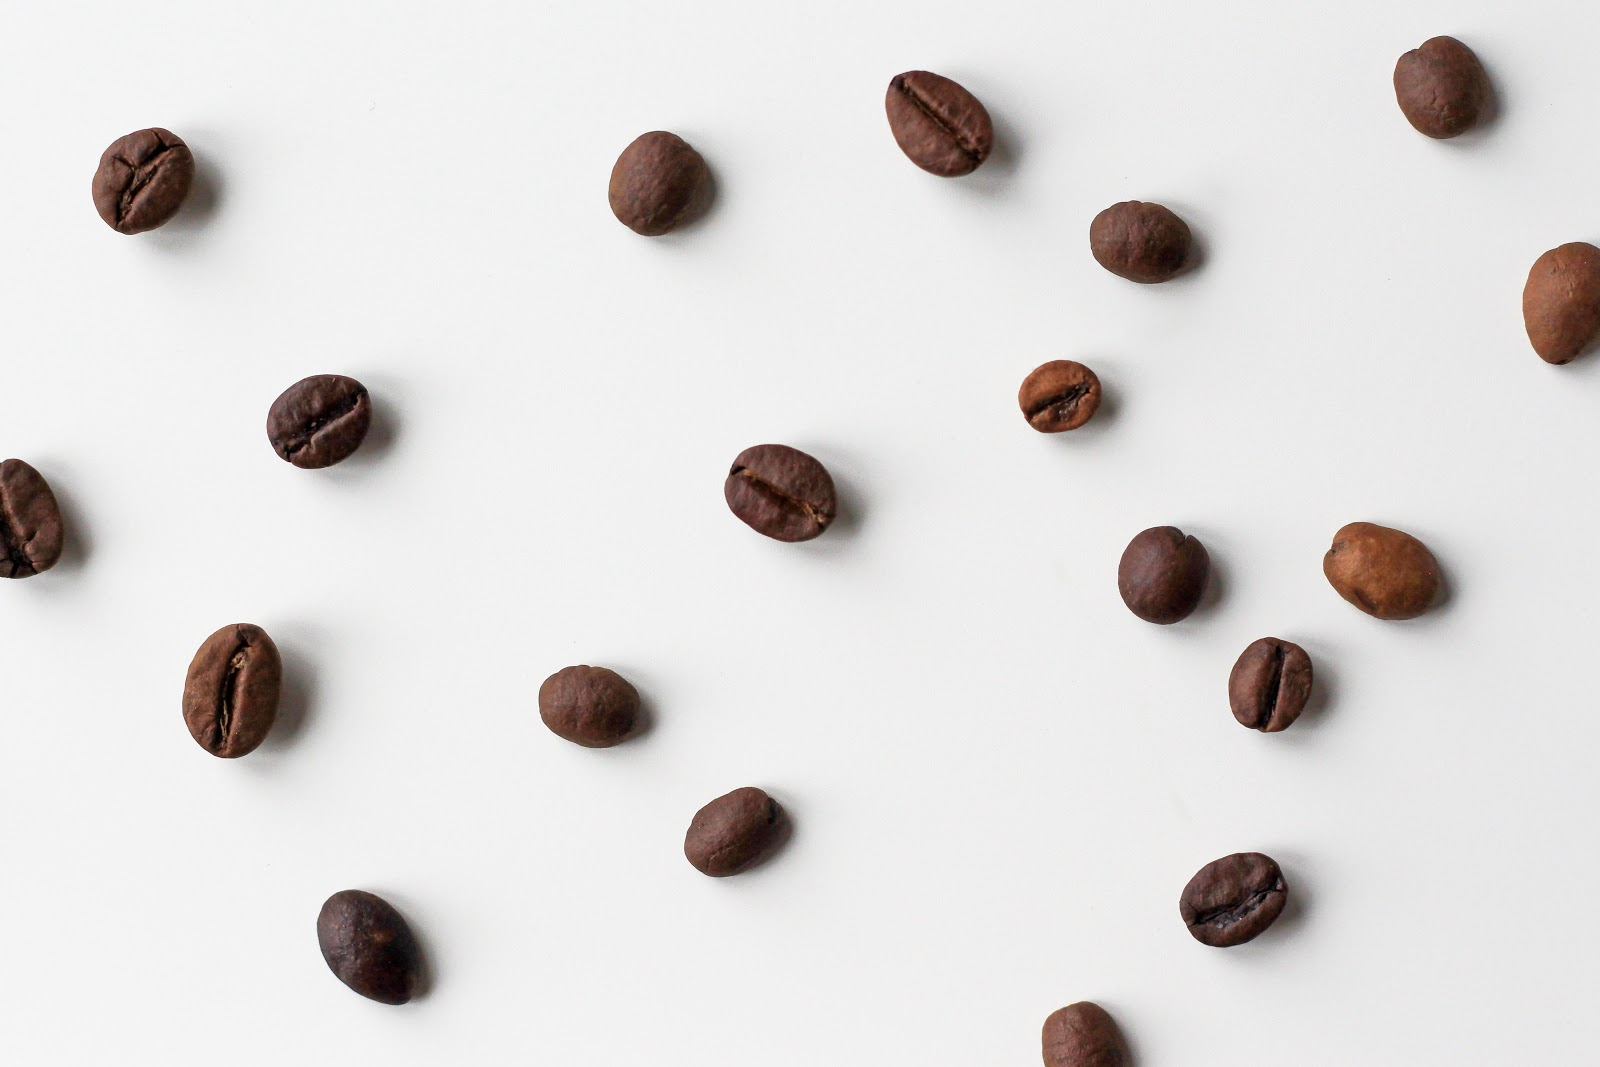 coffee beans scattered on a white background